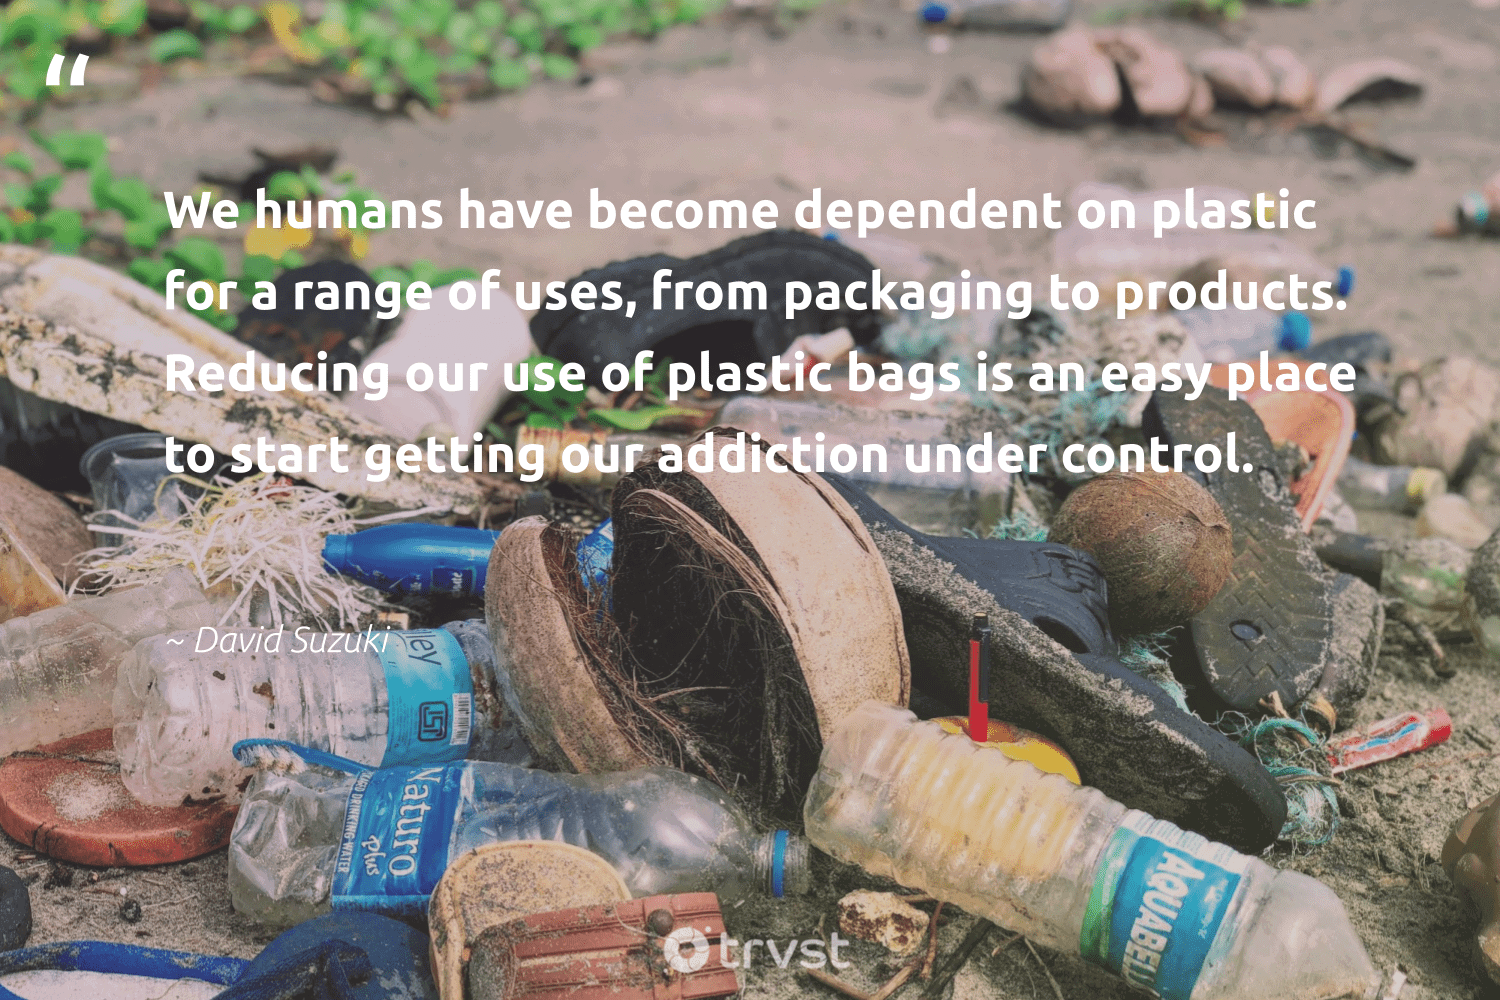 """""""We humans have become dependent on plastic for a range of uses, from packaging to products. Reducing our use of plastic bags is an easy place to start getting our addiction under control.""""  - David Suzuki #trvst #quotes #plasticwaste #plastic #bringyourownbag #saveourplanet #biodegradable #ecoconscious #ourplasticproblem #savetheplanet #changeahabit #collectiveaction"""